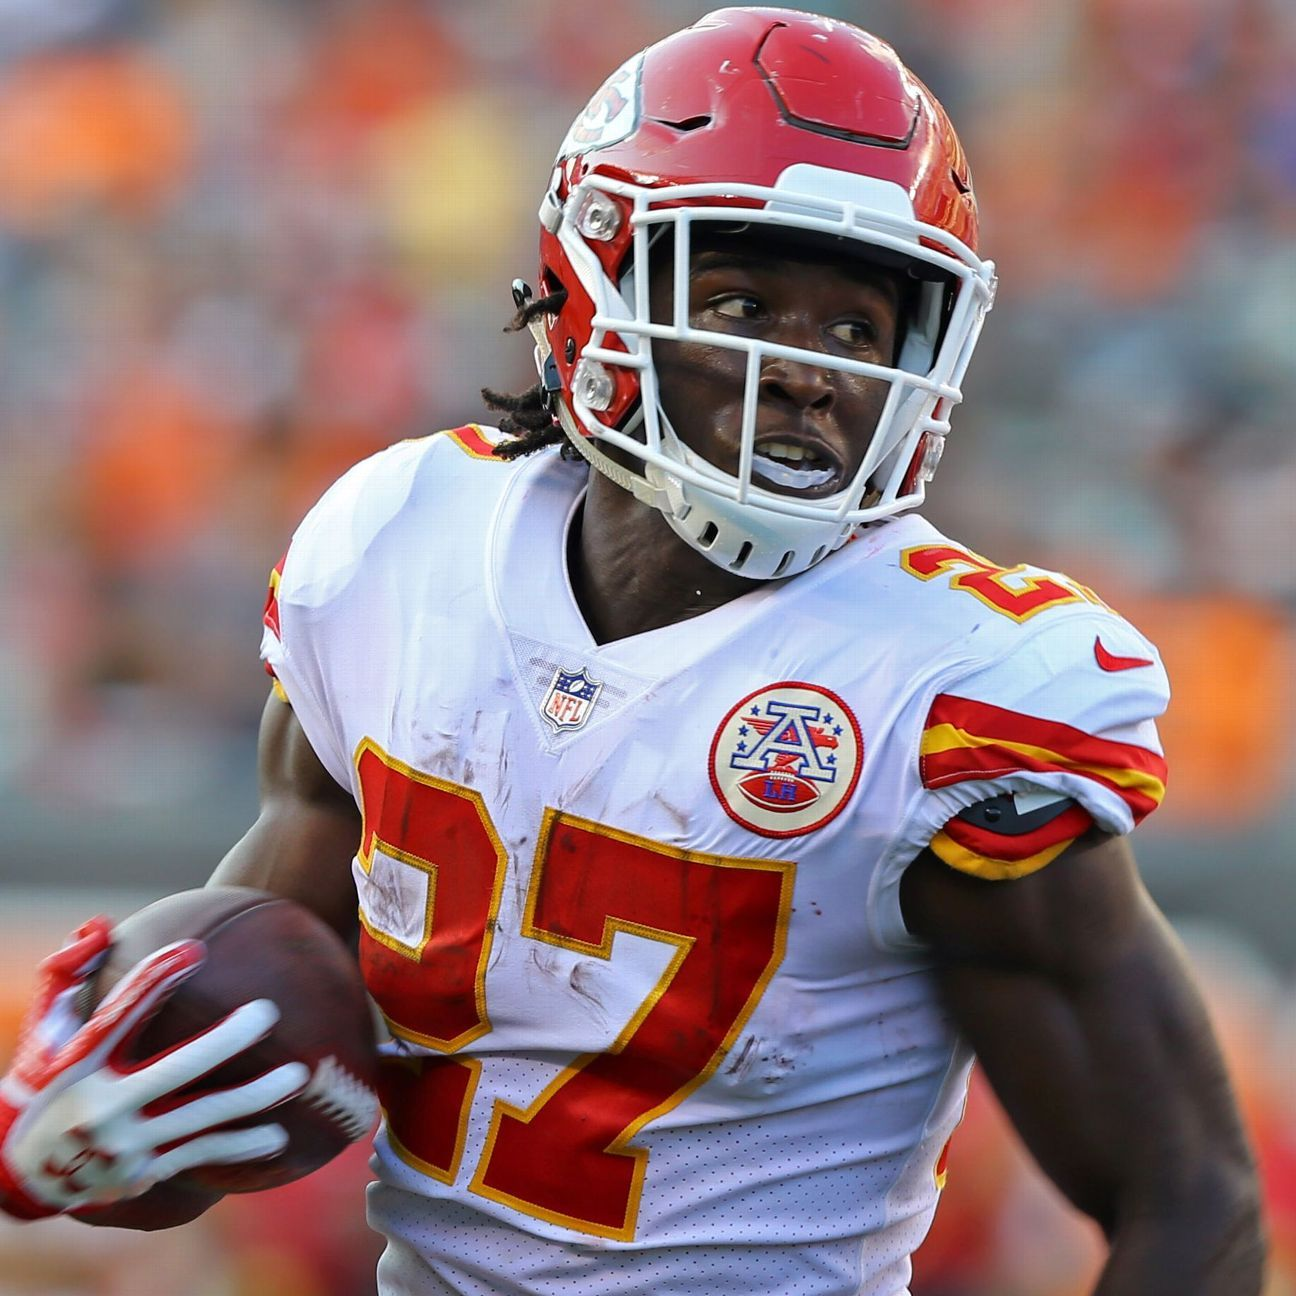 Kareem Hunt to Browns: How he fits, status with NFL and more r247926 1296x1296 1 1